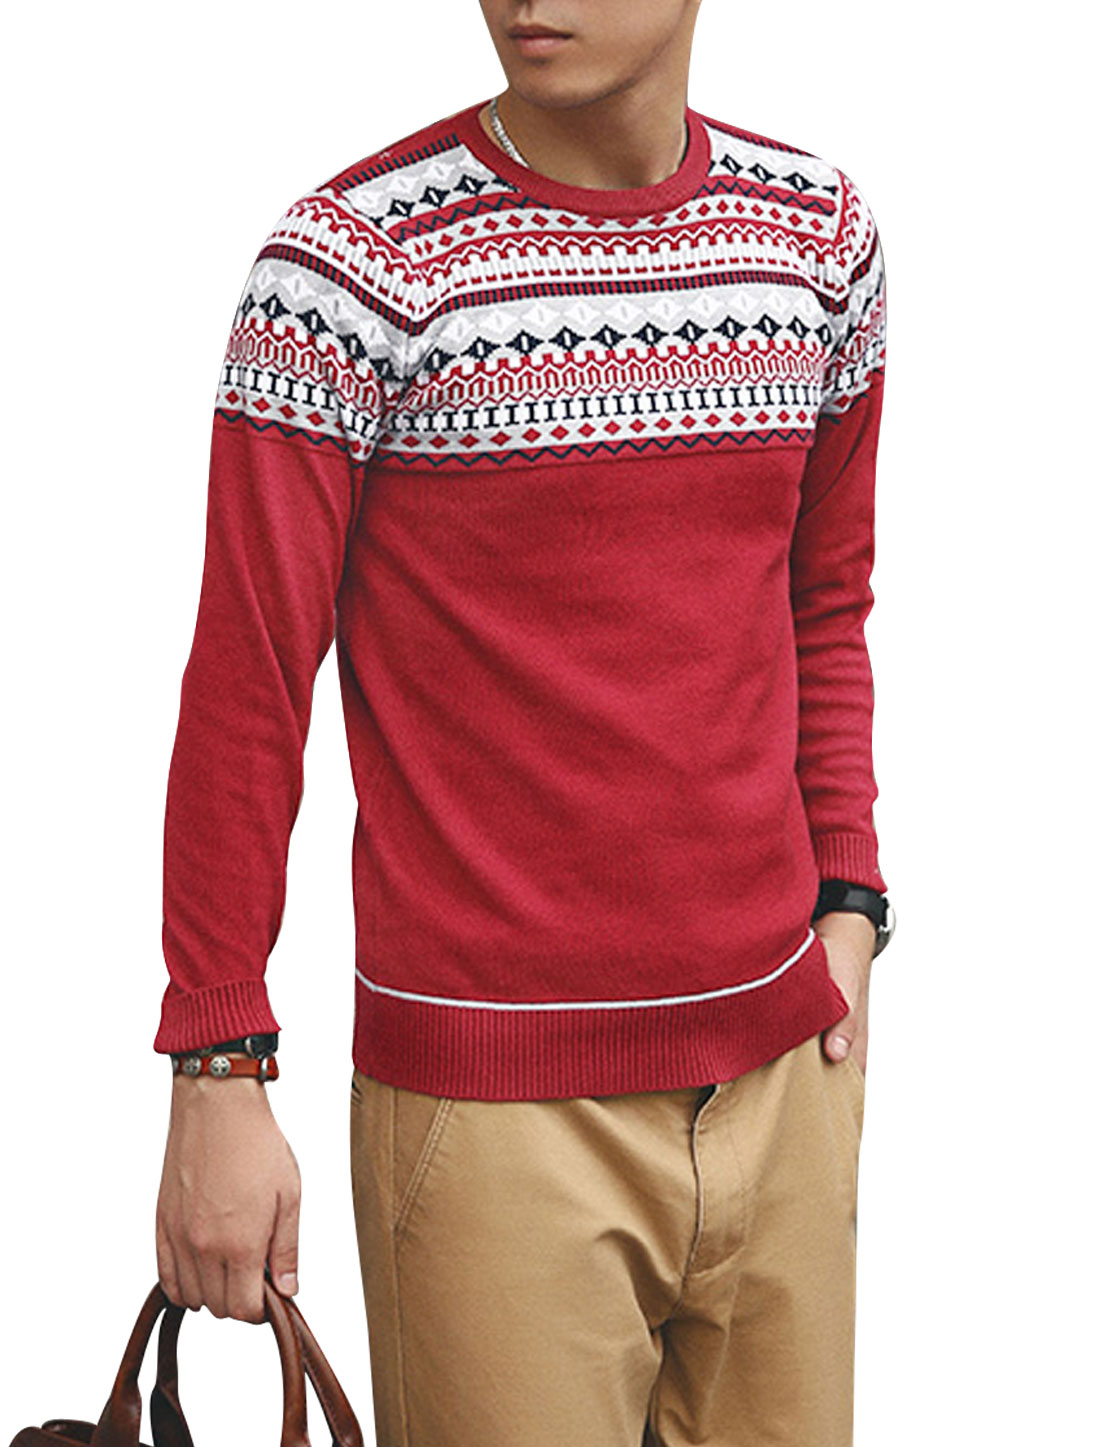 Men Argyle Pattern Zigzag Pattern Ribbing Cuffs Casual Sweater Burgundy S